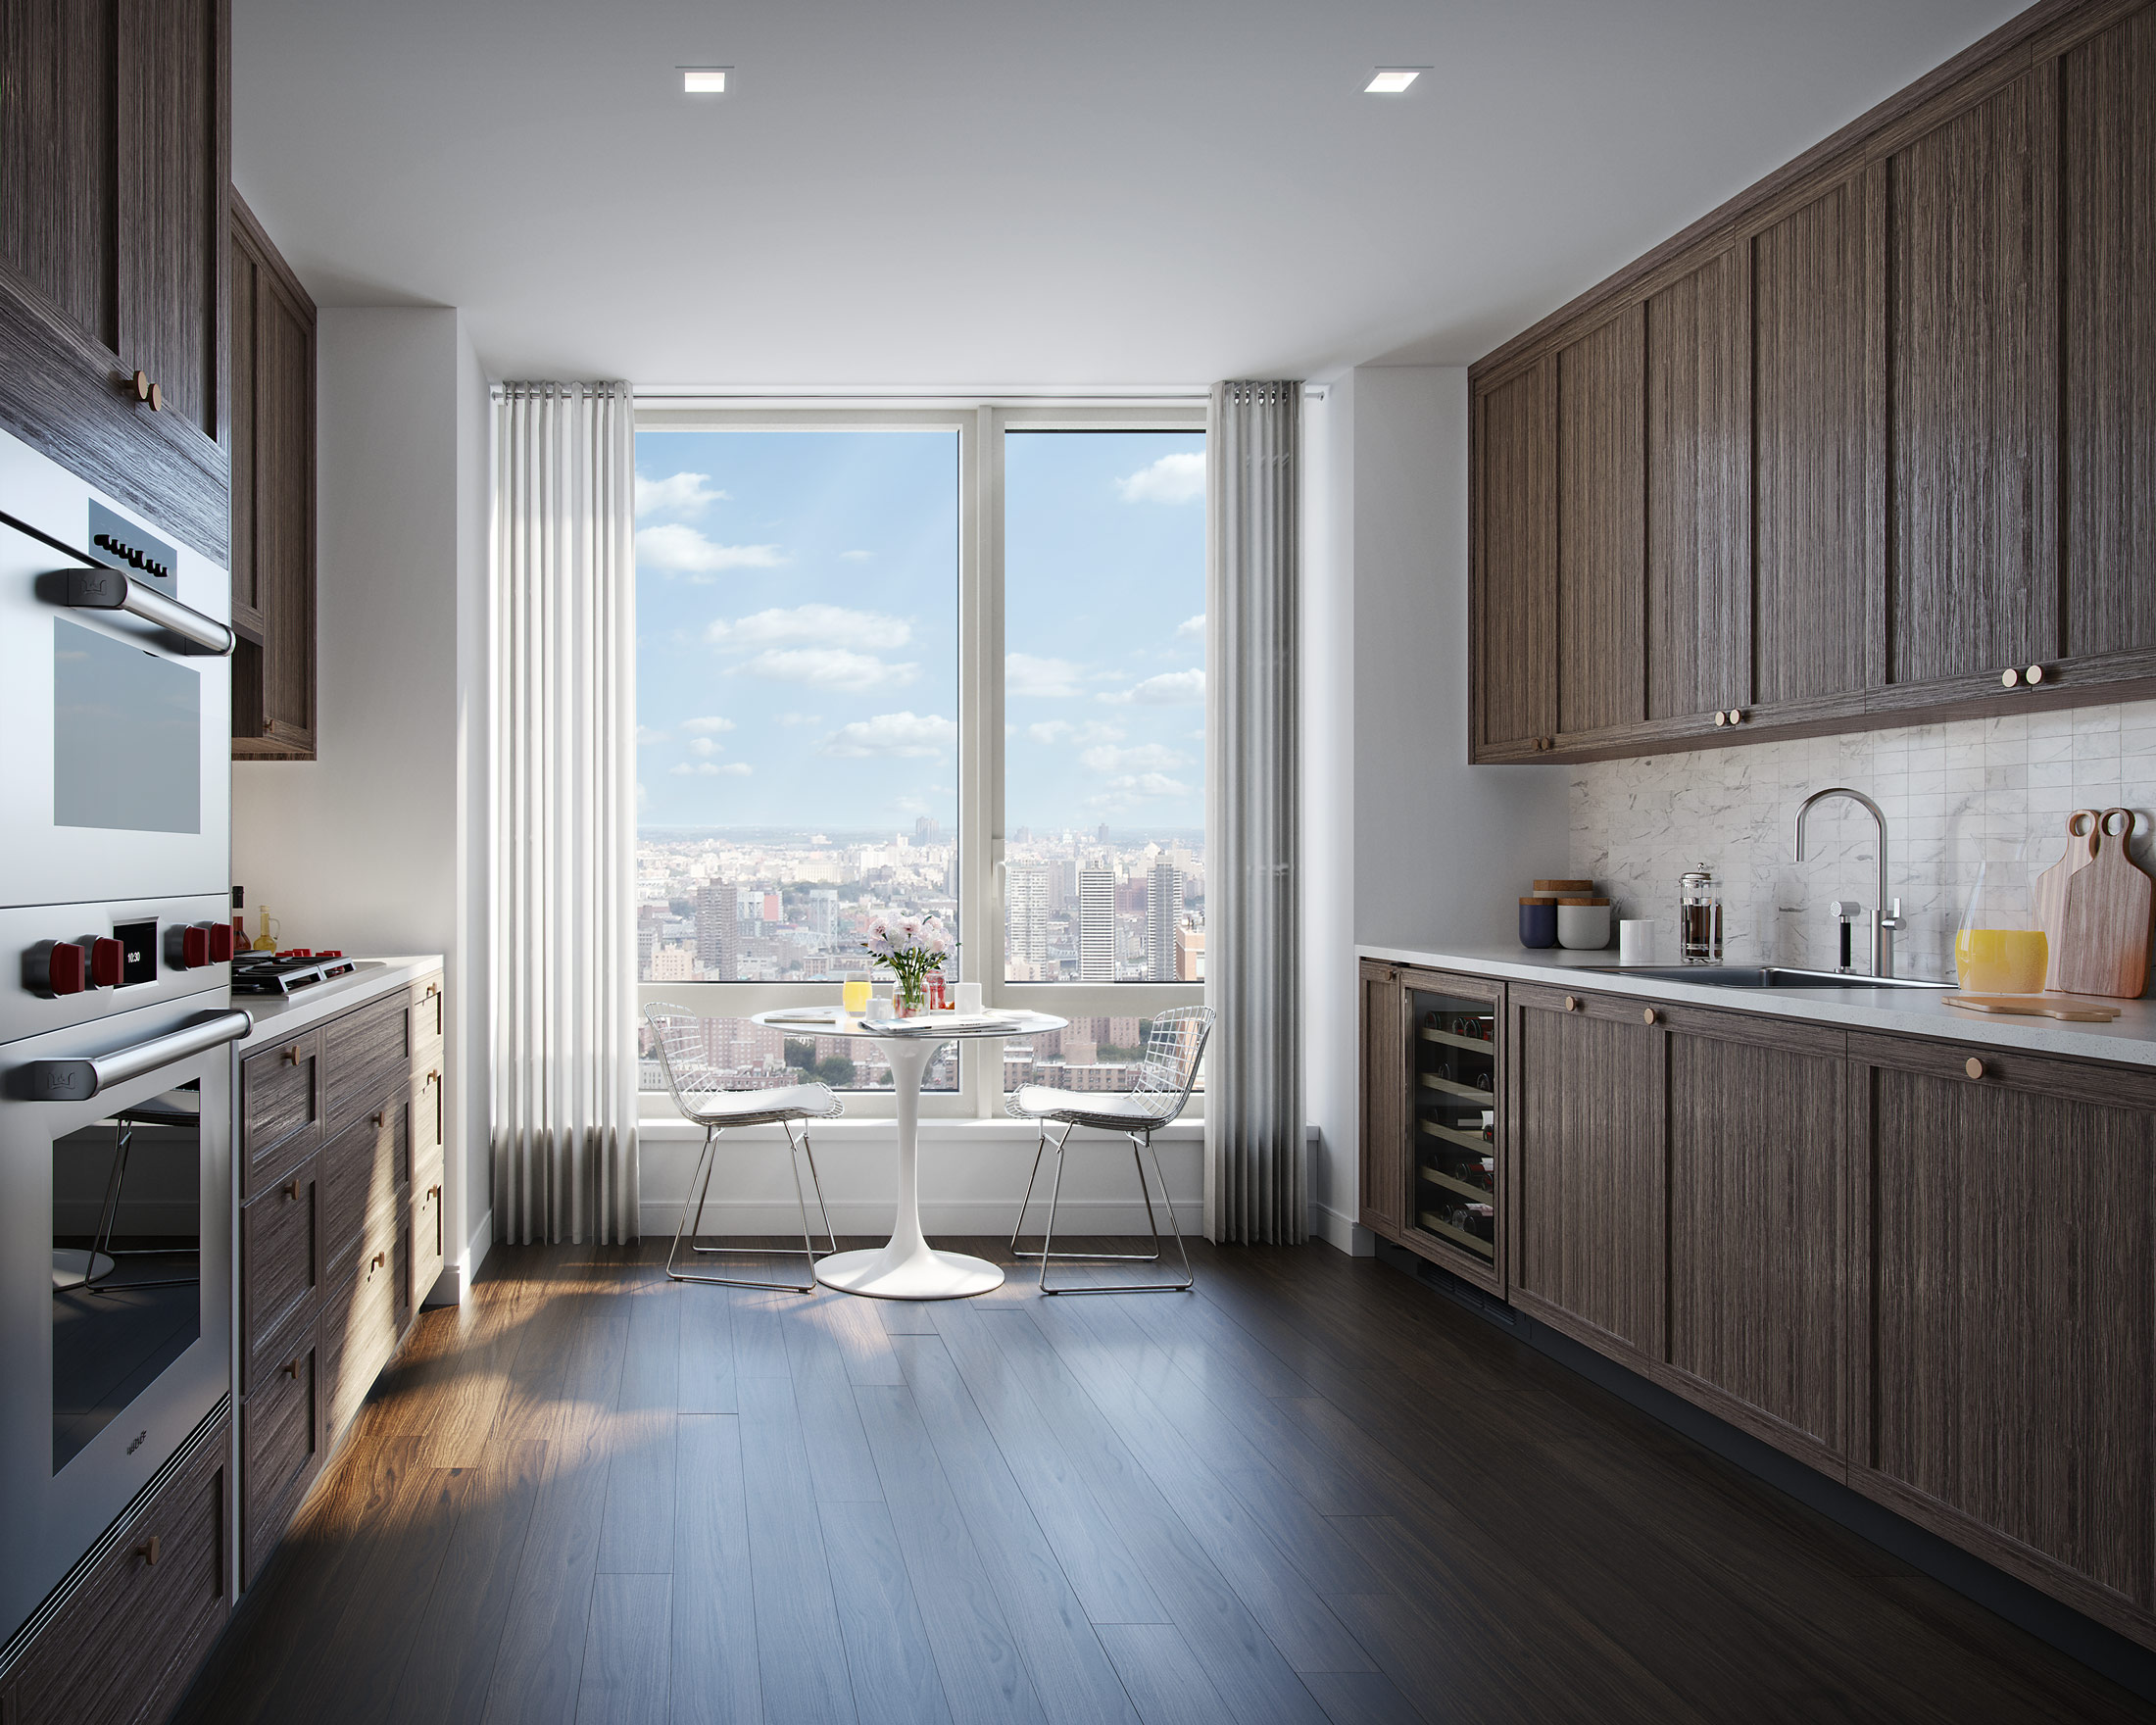 Architectural Rendering of the kitchen of The Easton project located on the Upper East Side, New York City